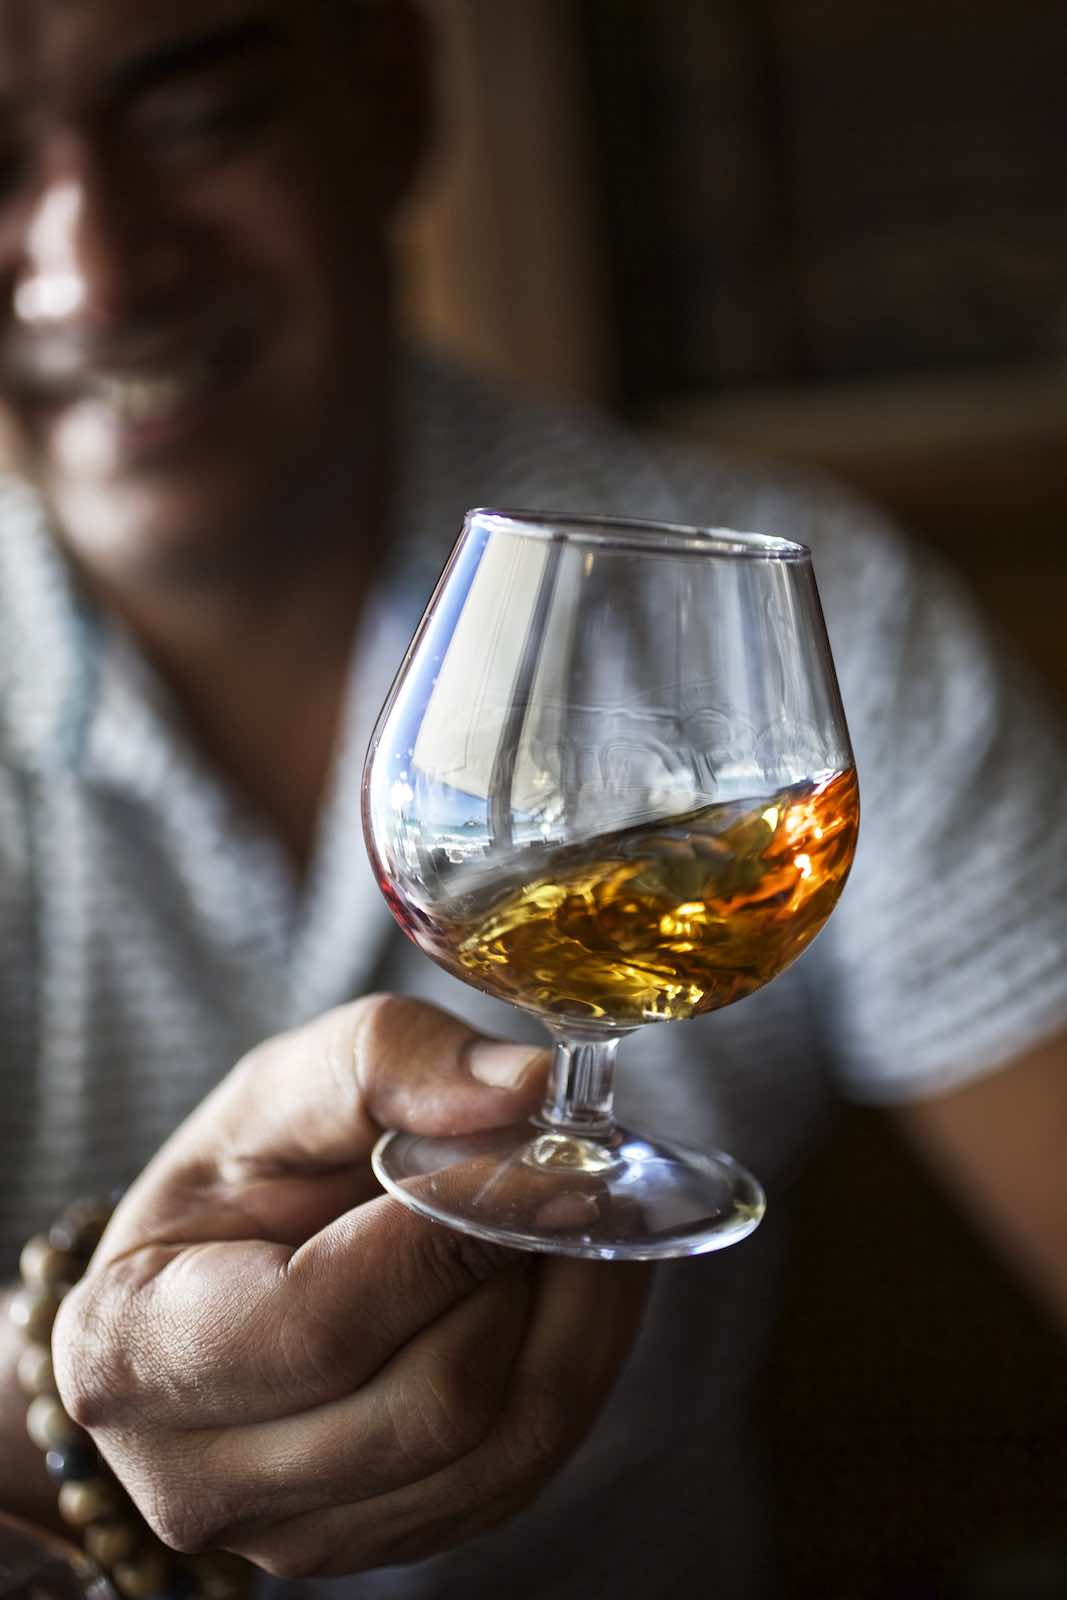 Man swirling rum in a short stemware glass.